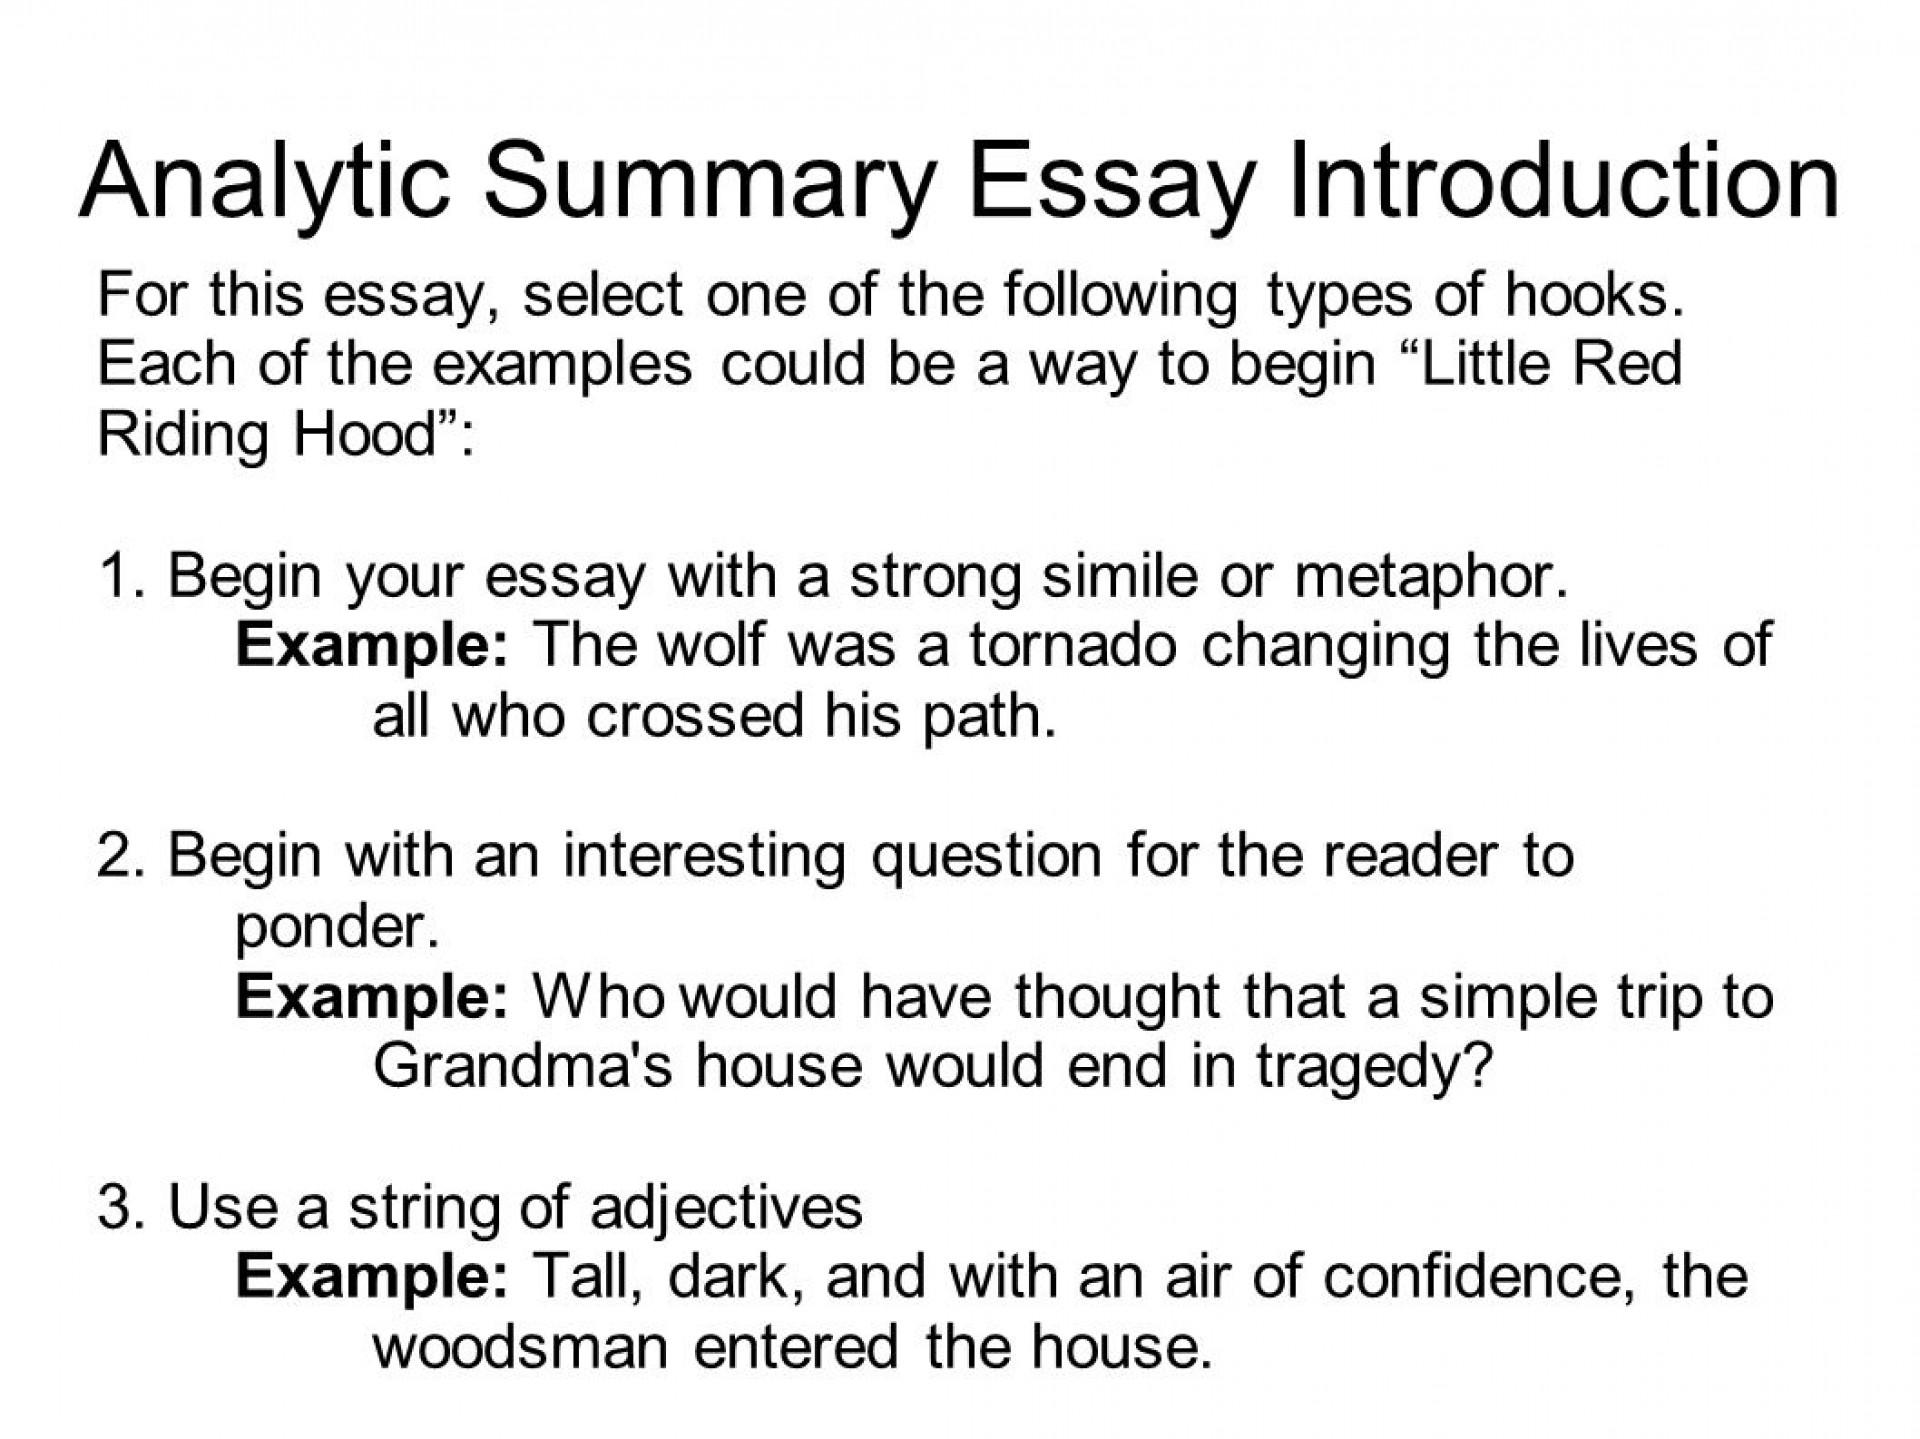 004 Types Of Hooks For Essays Essay Example Examples Co Sli Expository Comparison Writing Narrative Argumentative High Surprising Different Pdf 1920